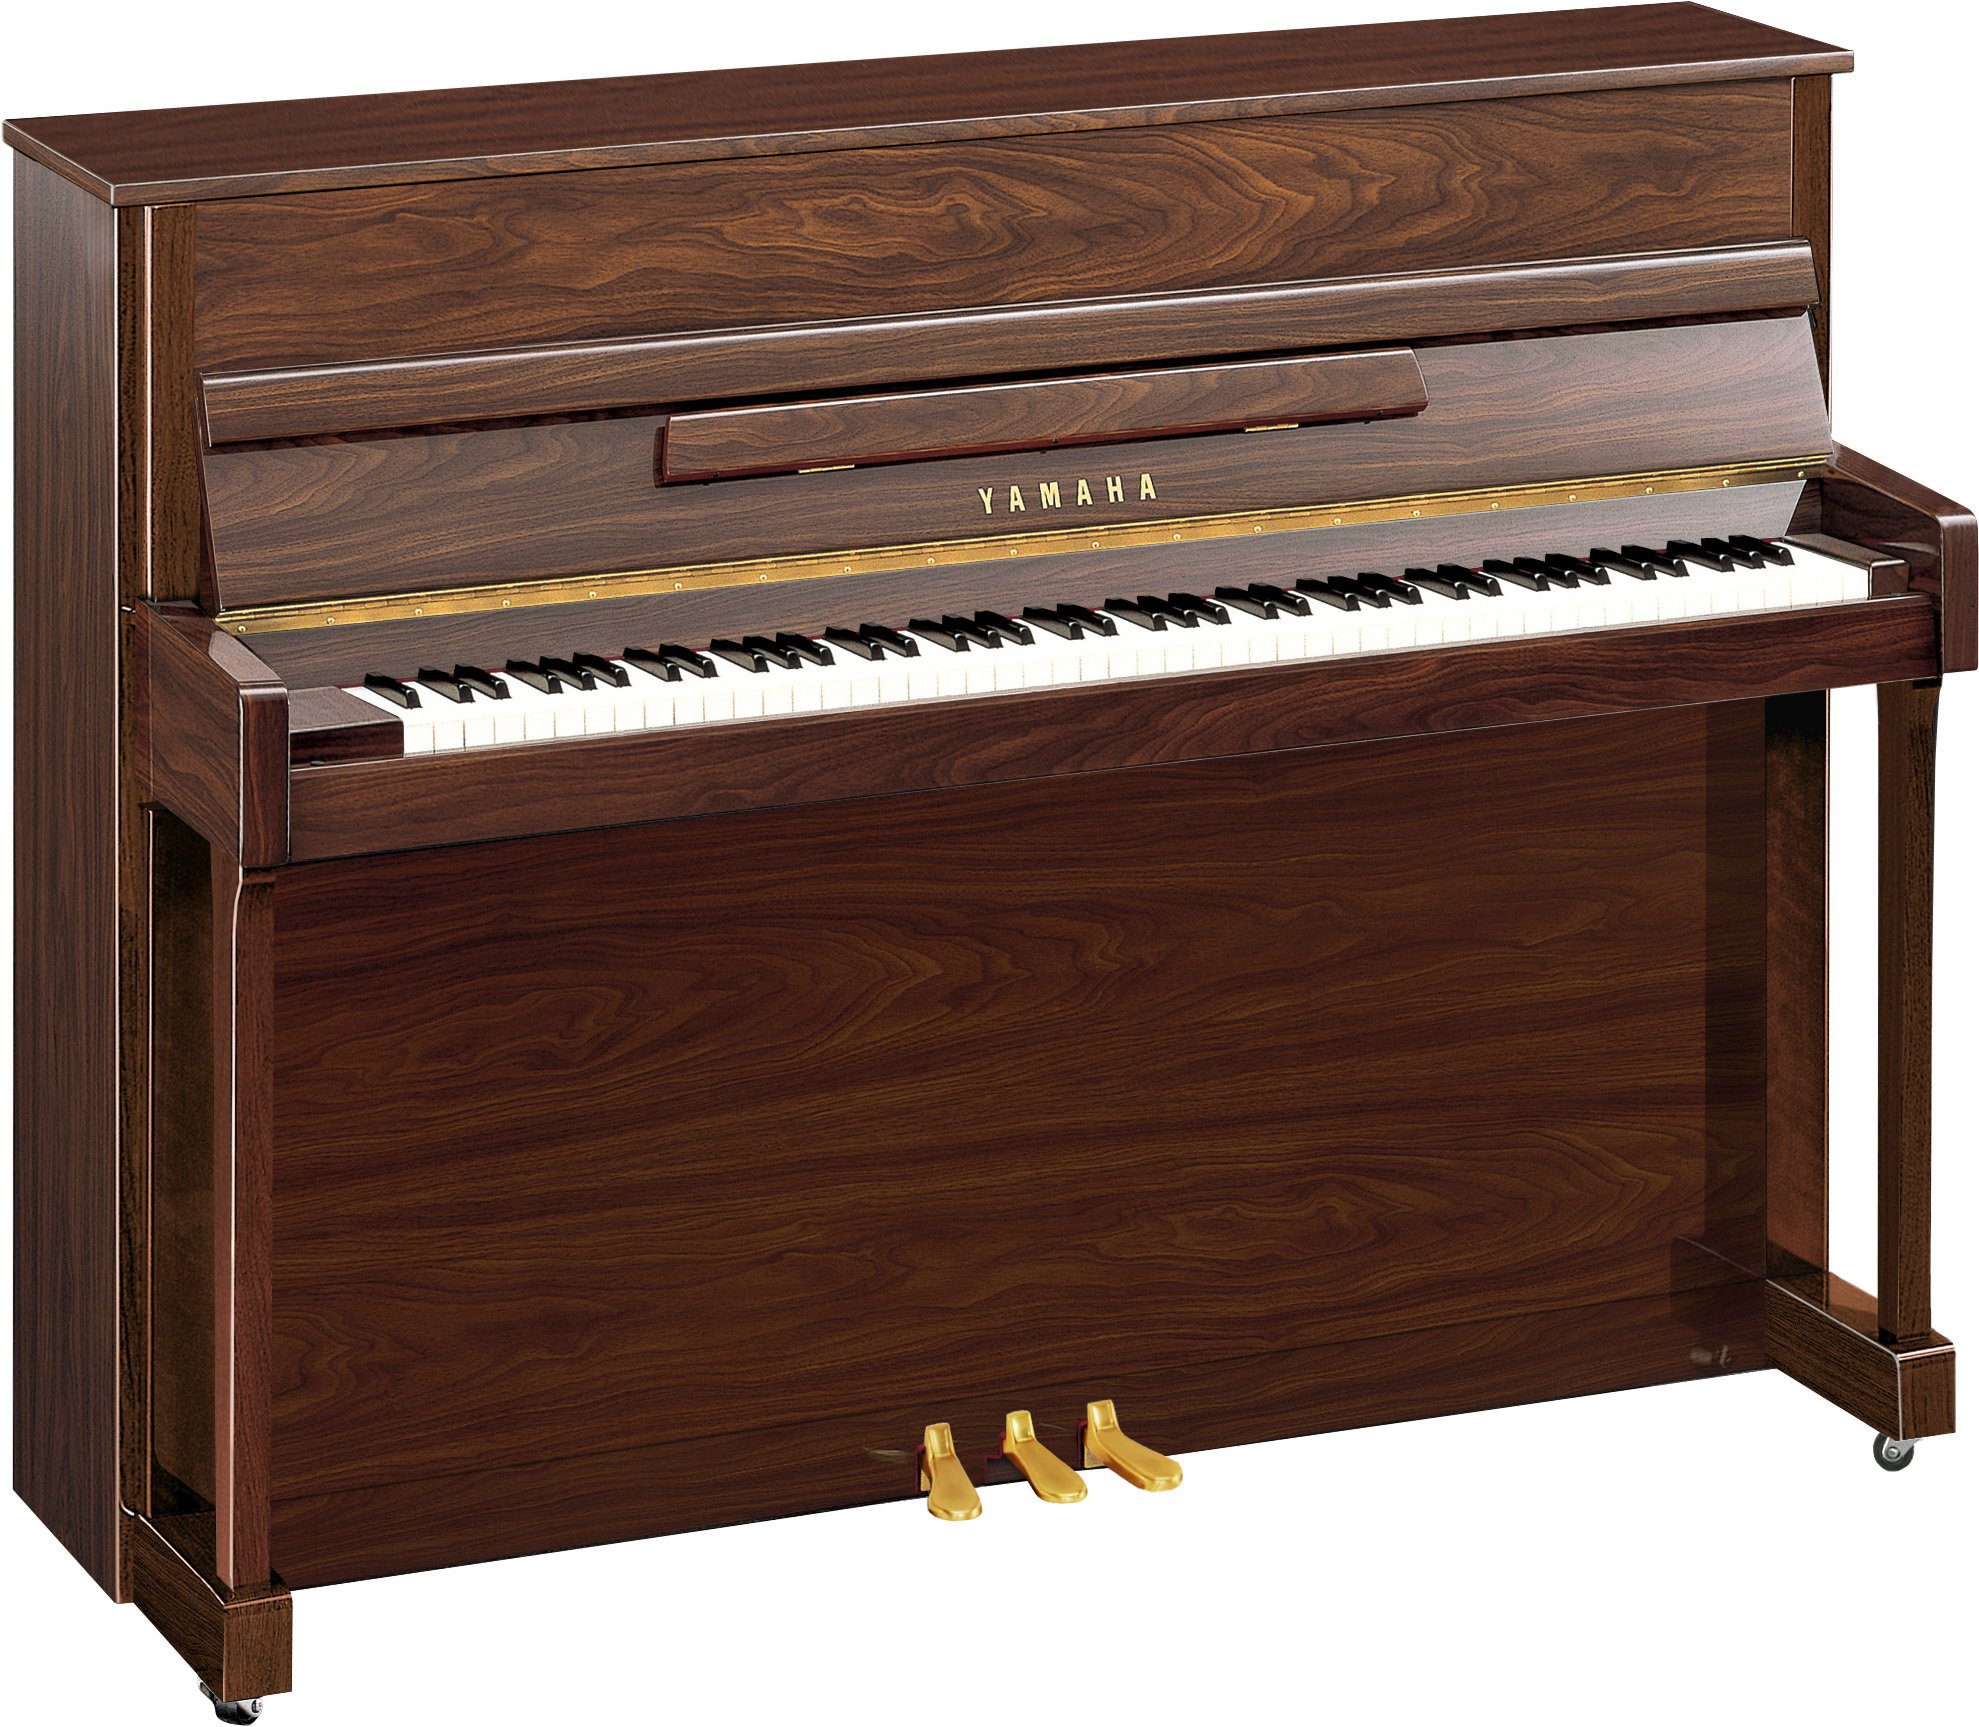 Yamaha B2 Polished Walnut